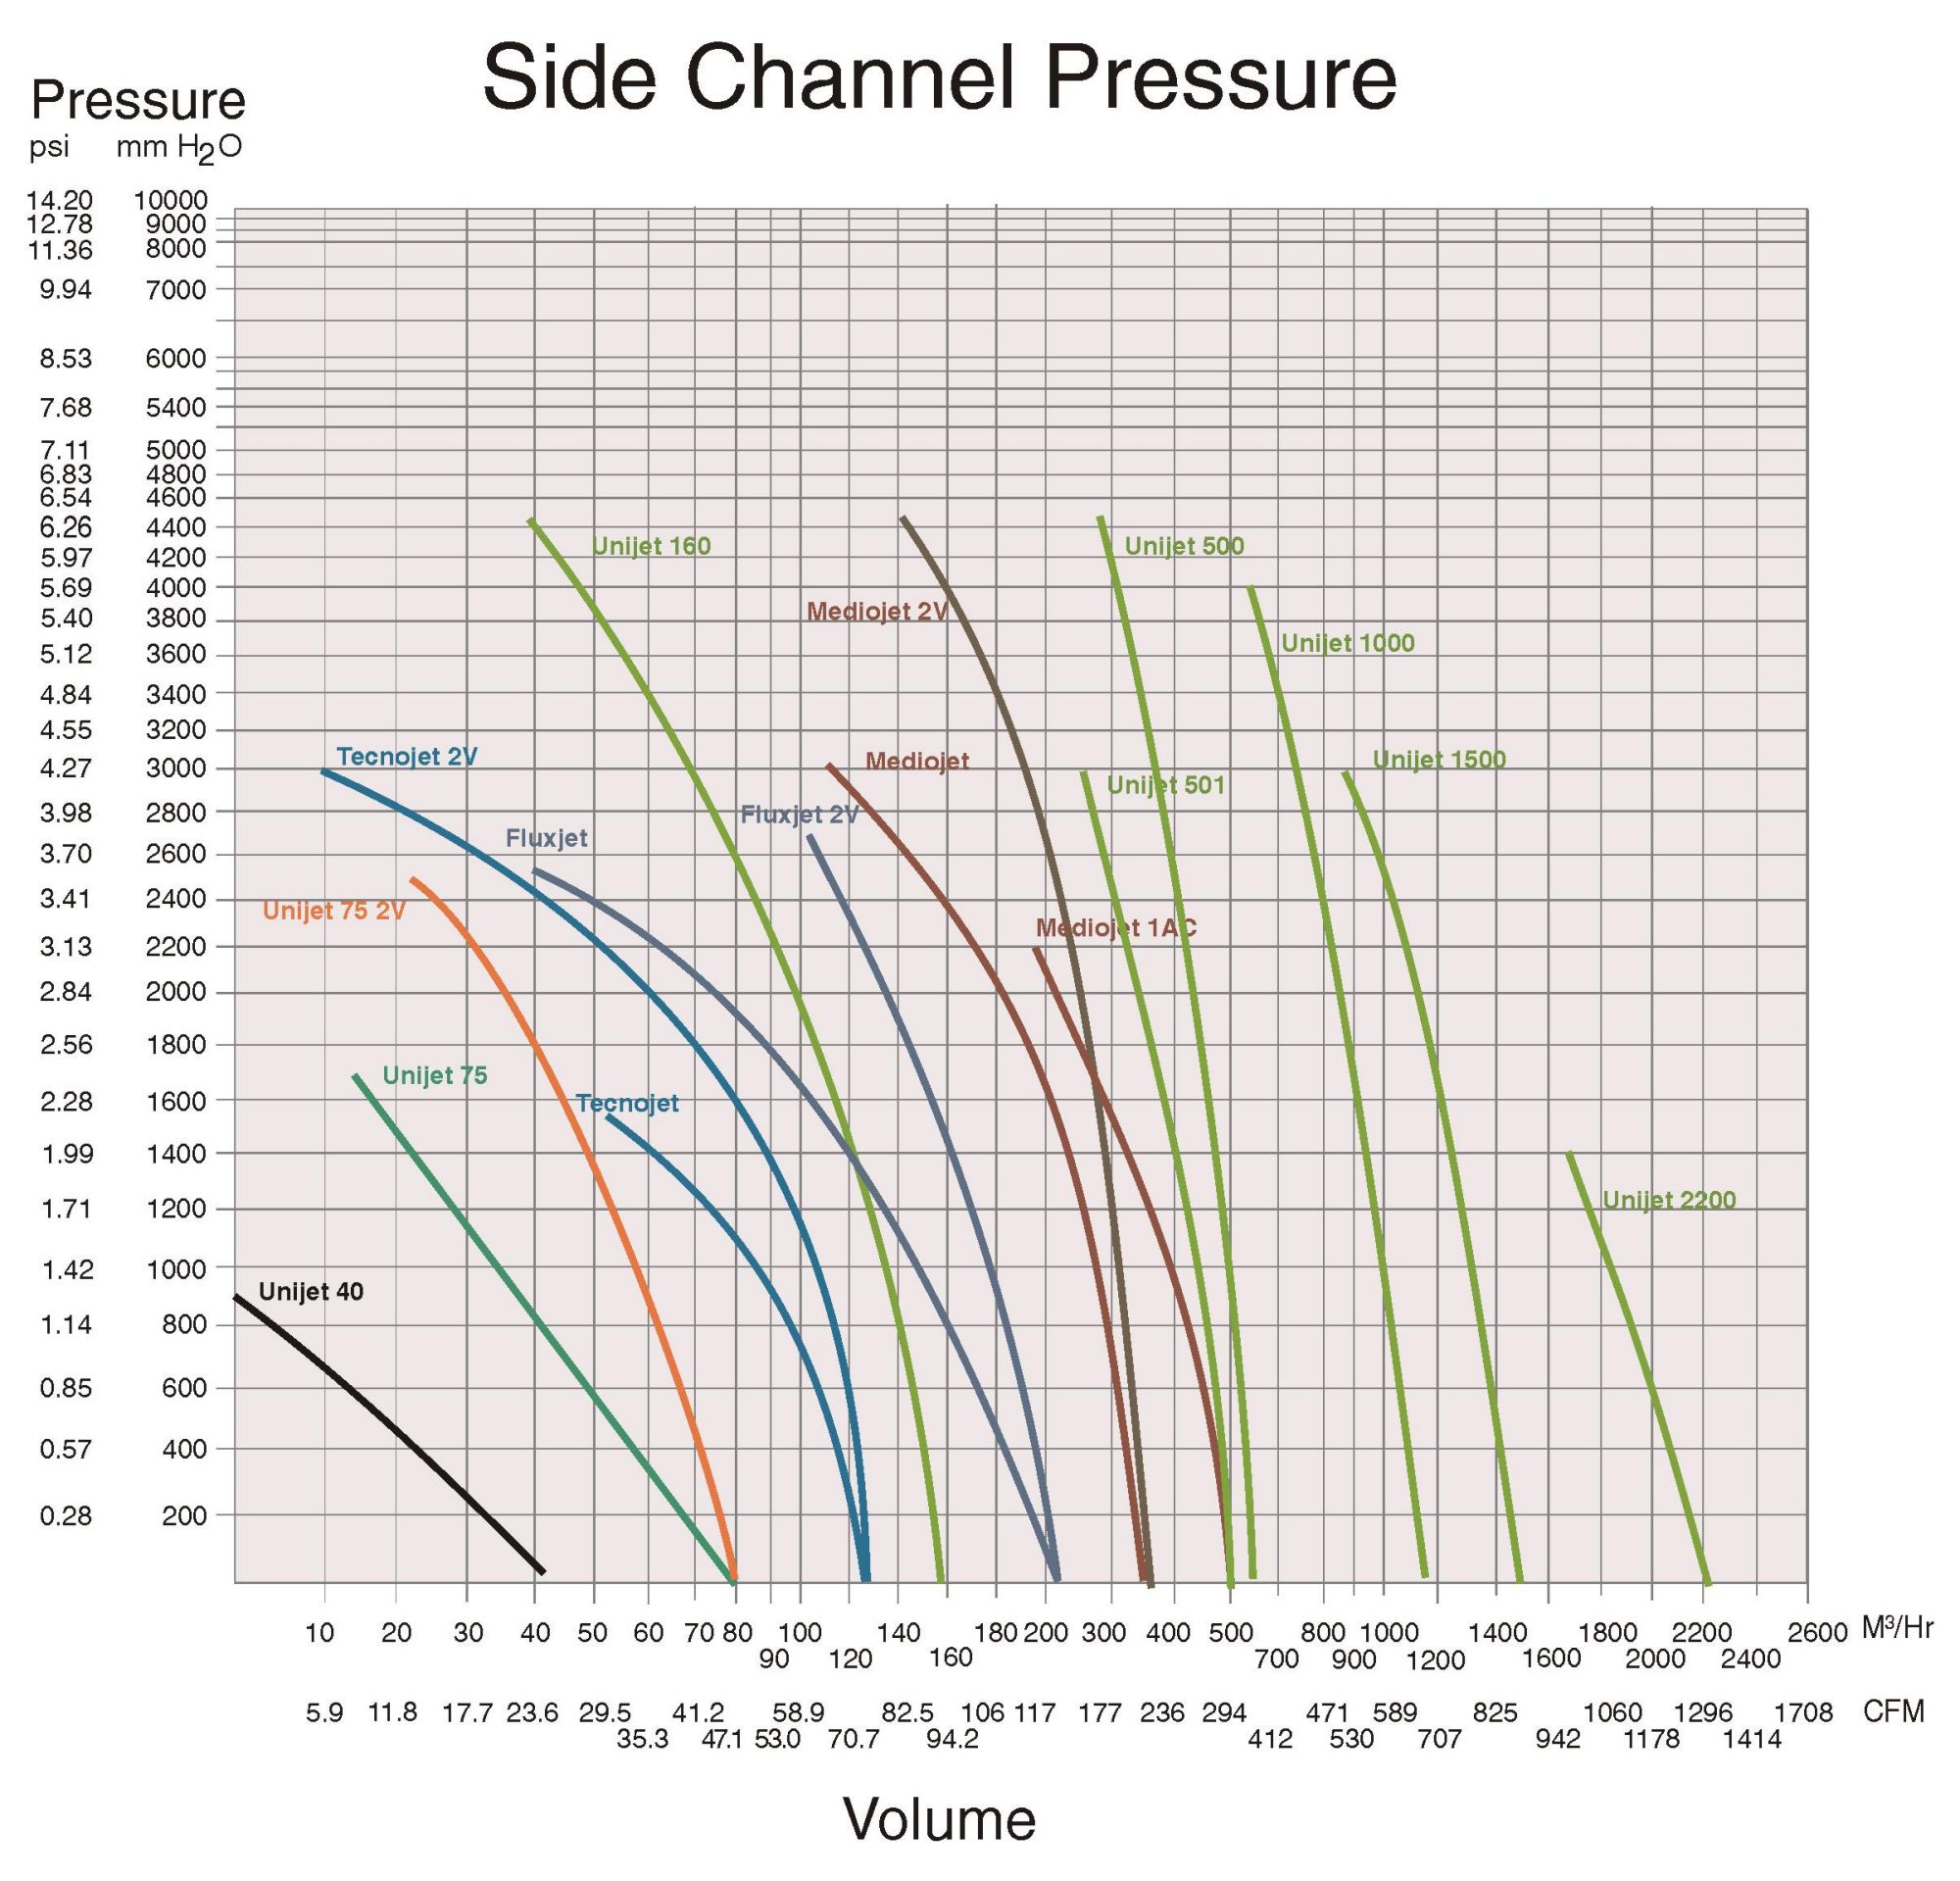 side_channel_pressure_2000